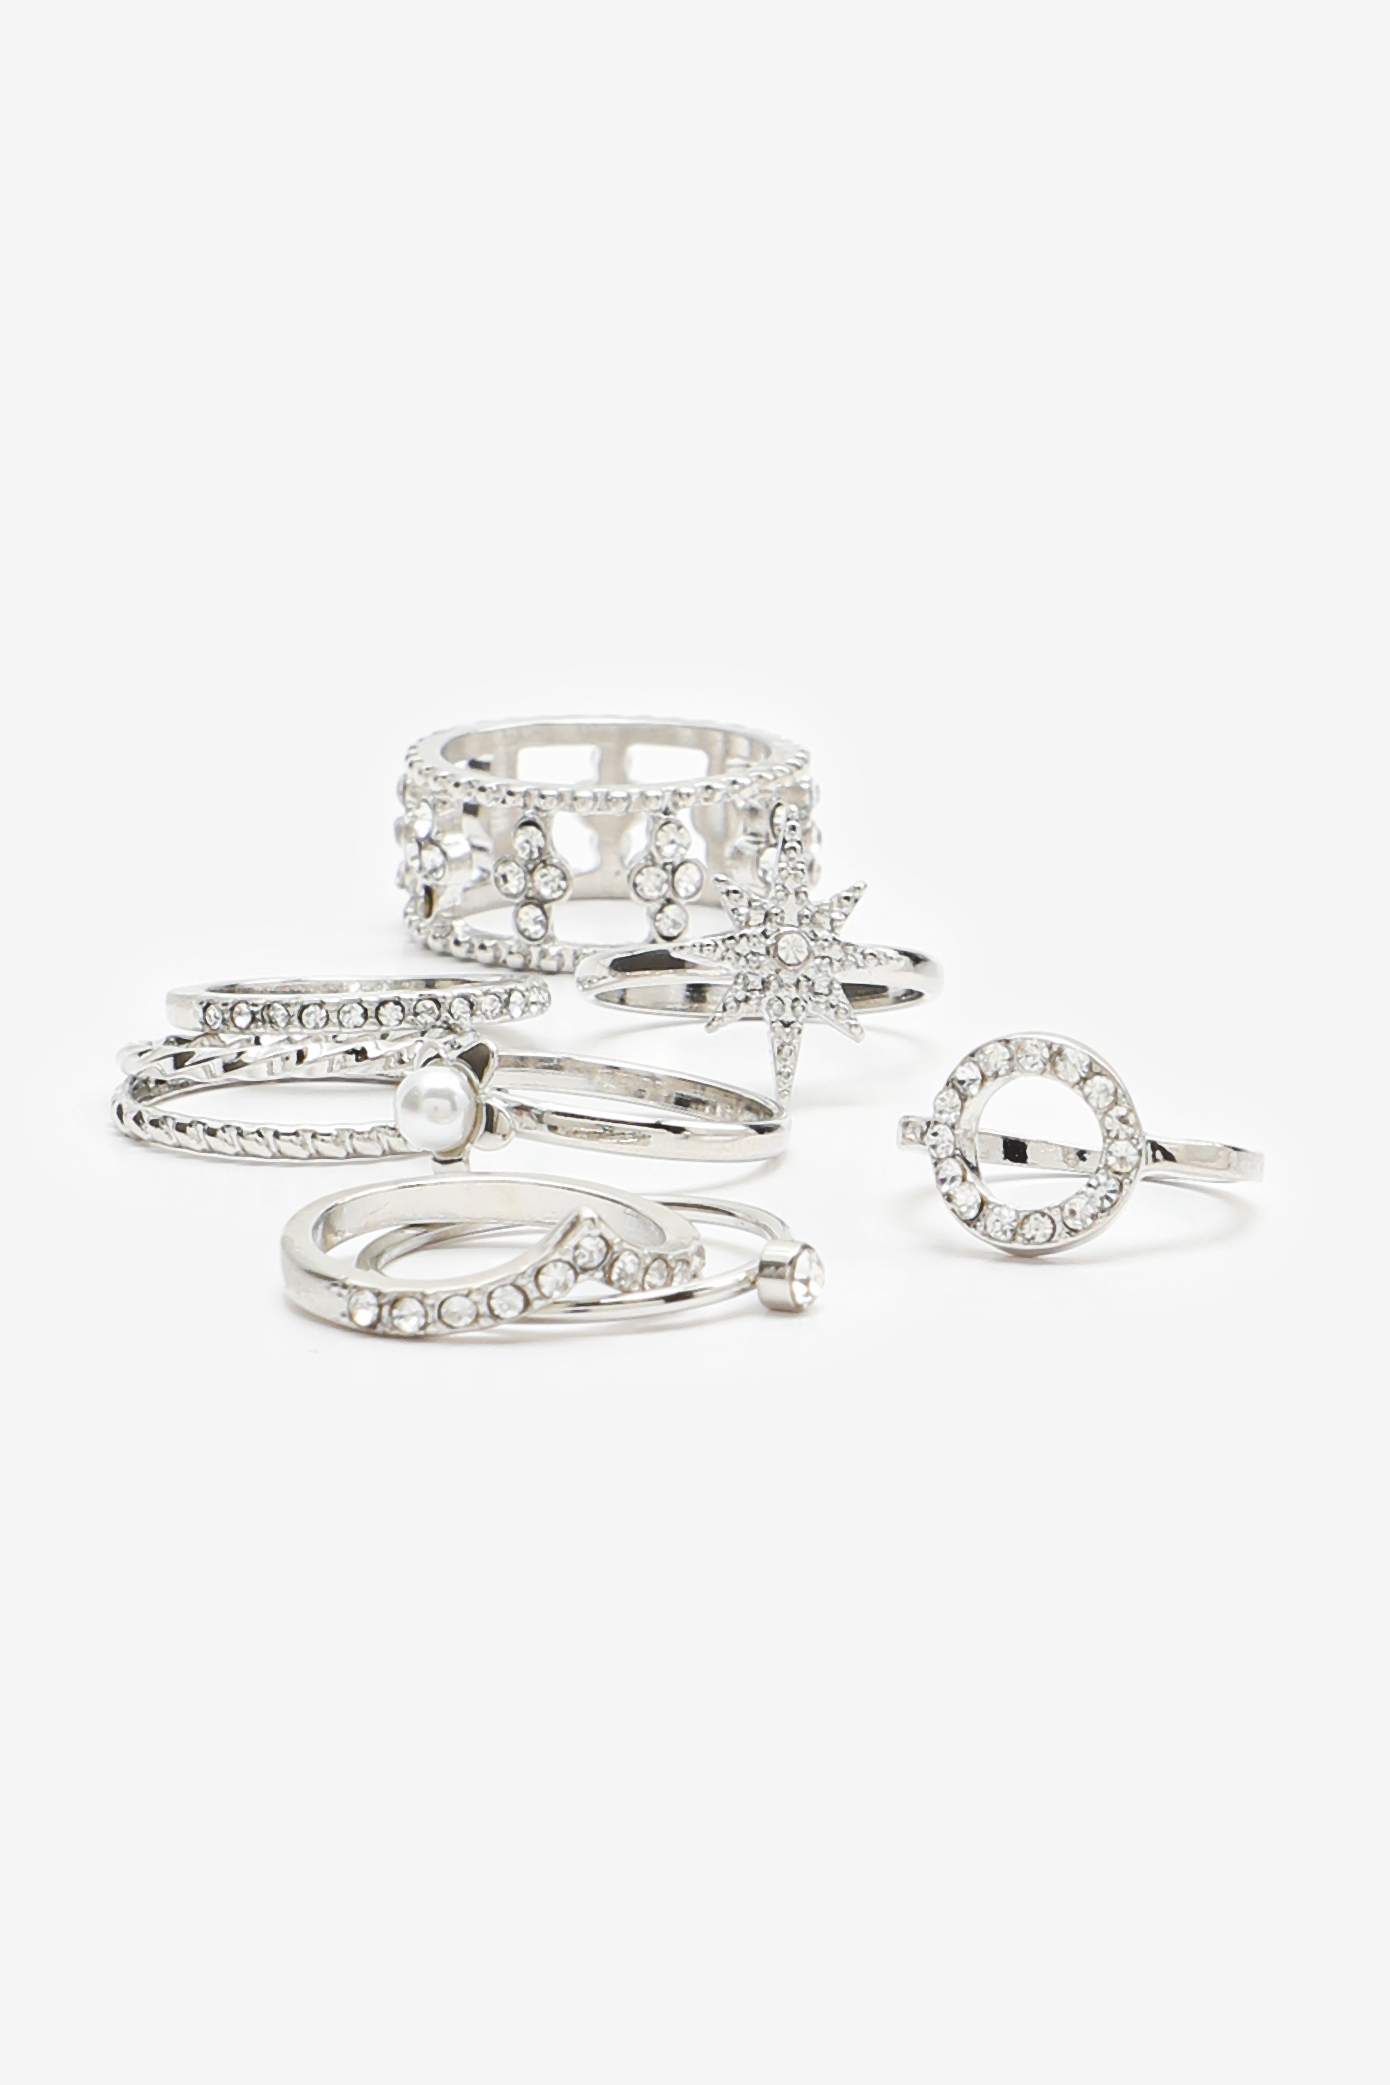 Pack of Assorted Silver Rings